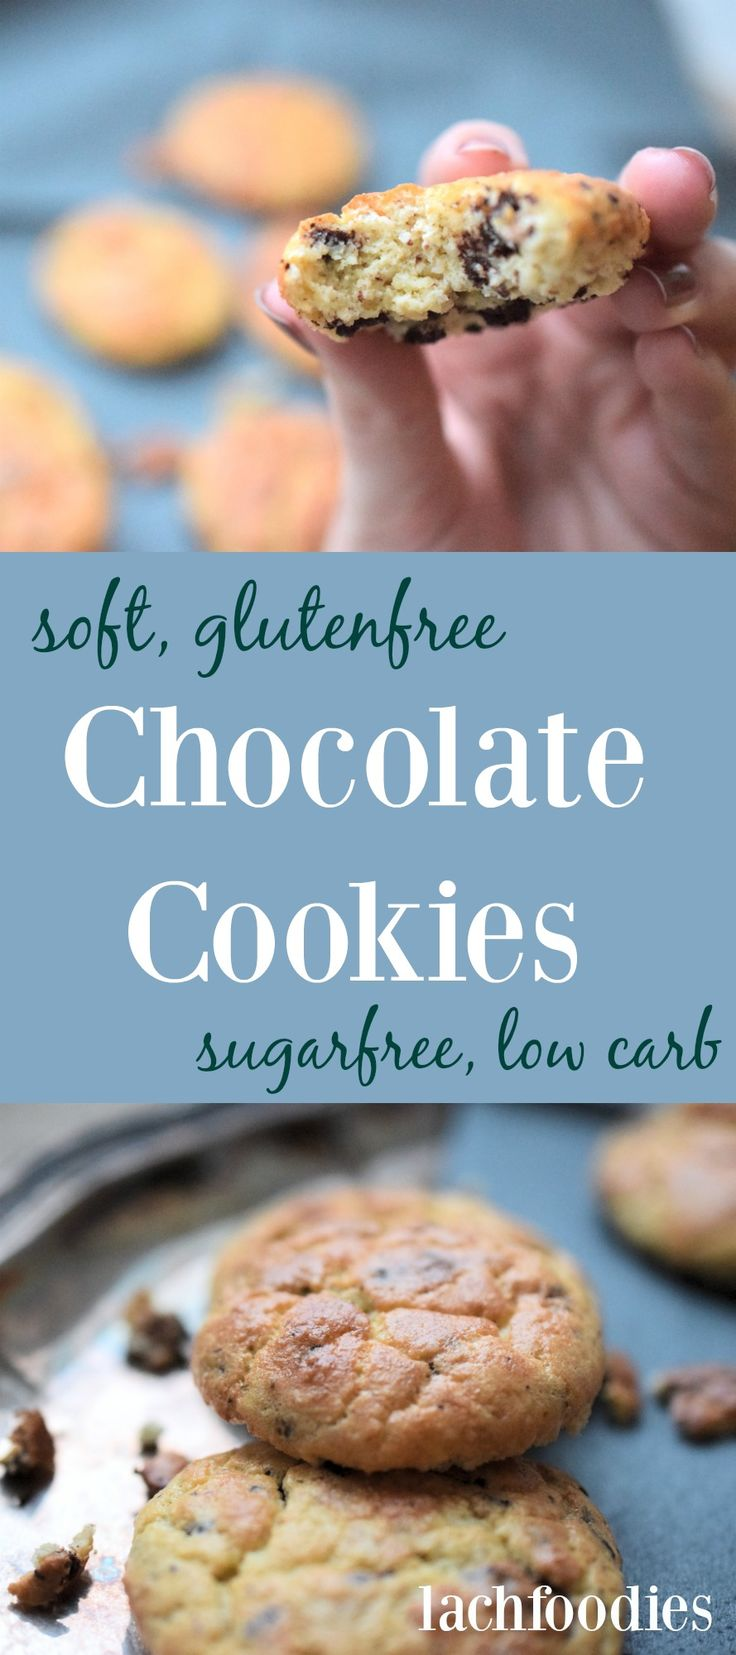 Chocolate cookies. Amazing soft and easy to bake! Saftige, leckere Schokoladen Kekse ohne Kohlenhydrate. Low Carb, glutenfrei, glutenfree, Schokolade, backblog, foodblog, lchf, lc, low carb, zuckerfre(Fitness Recipes)